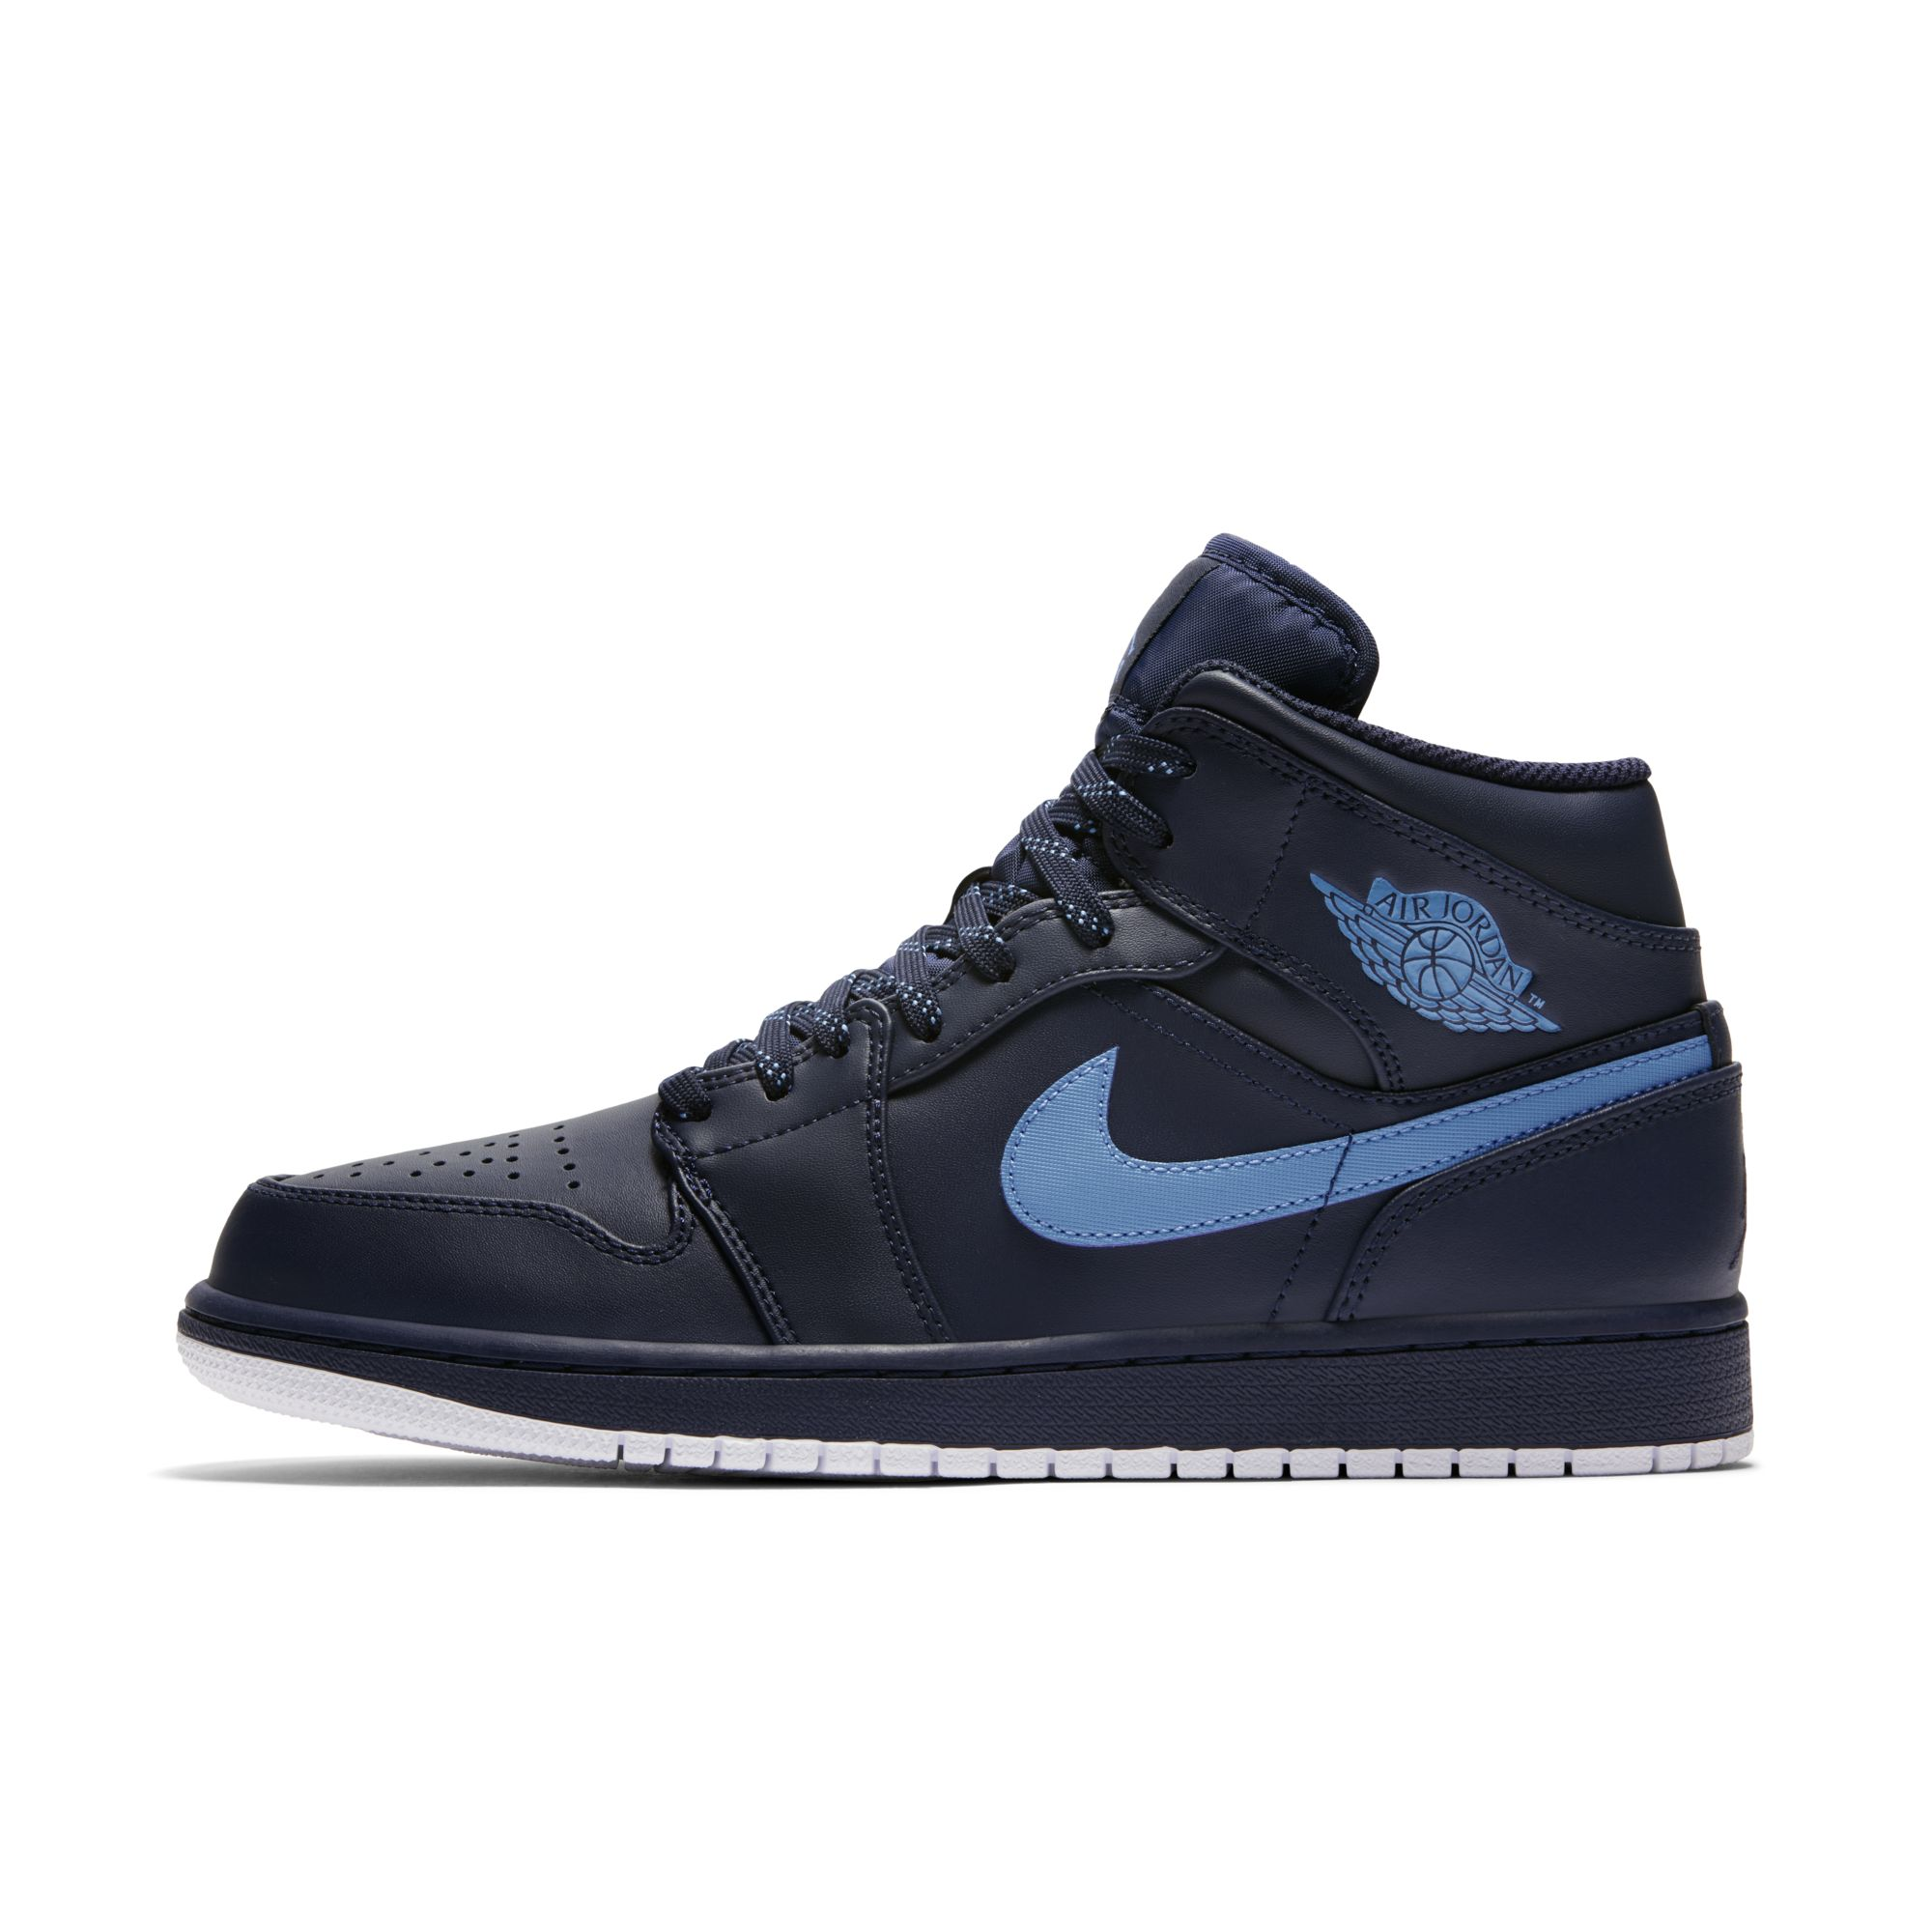 air-jordan-1-mid-obsidian-university-blue-2